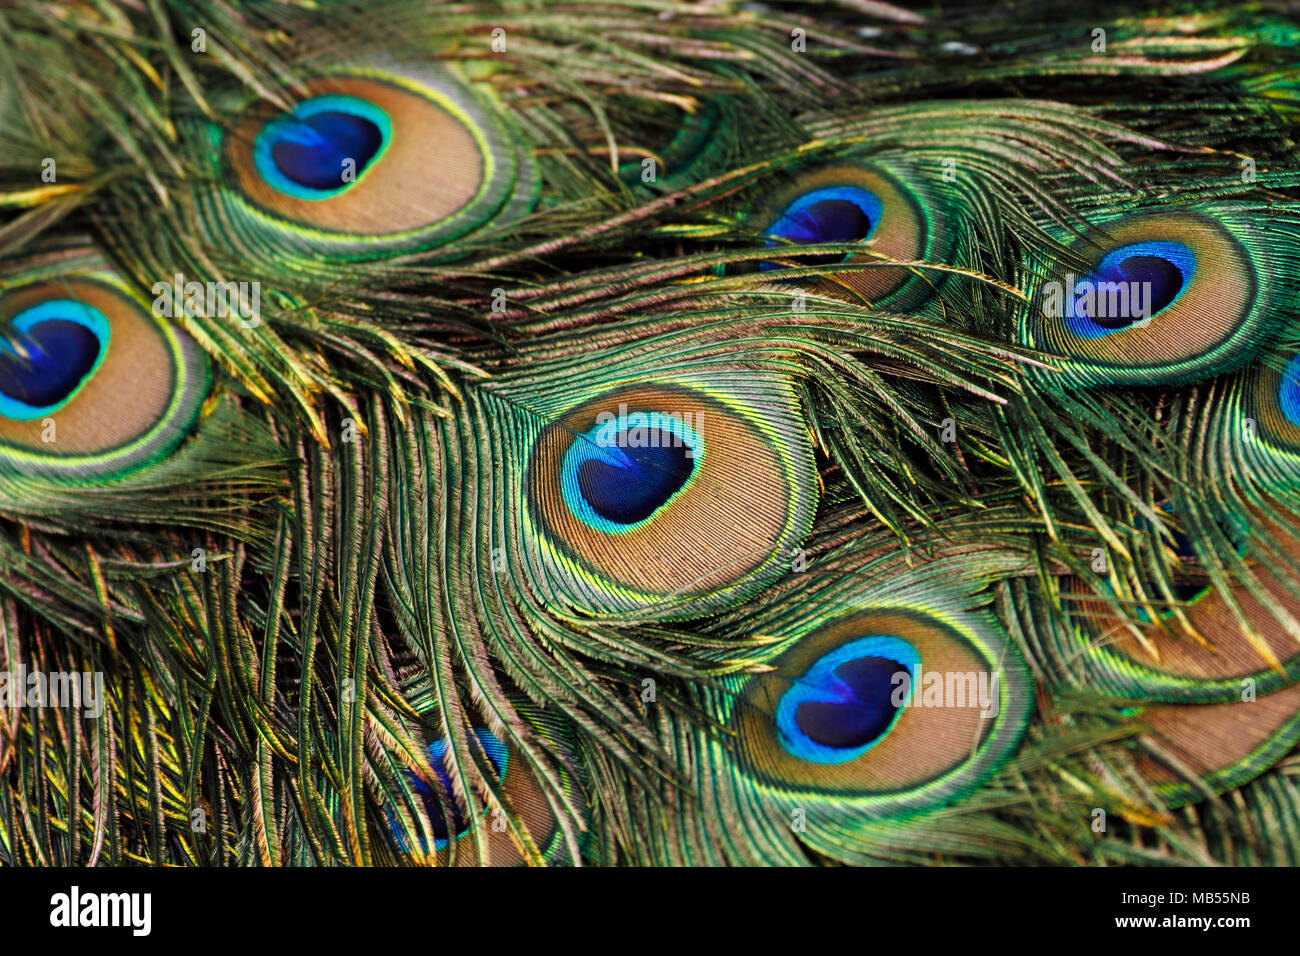 Green peafowl / peacock (Pavo muticus) tail feathers background - Stock Image